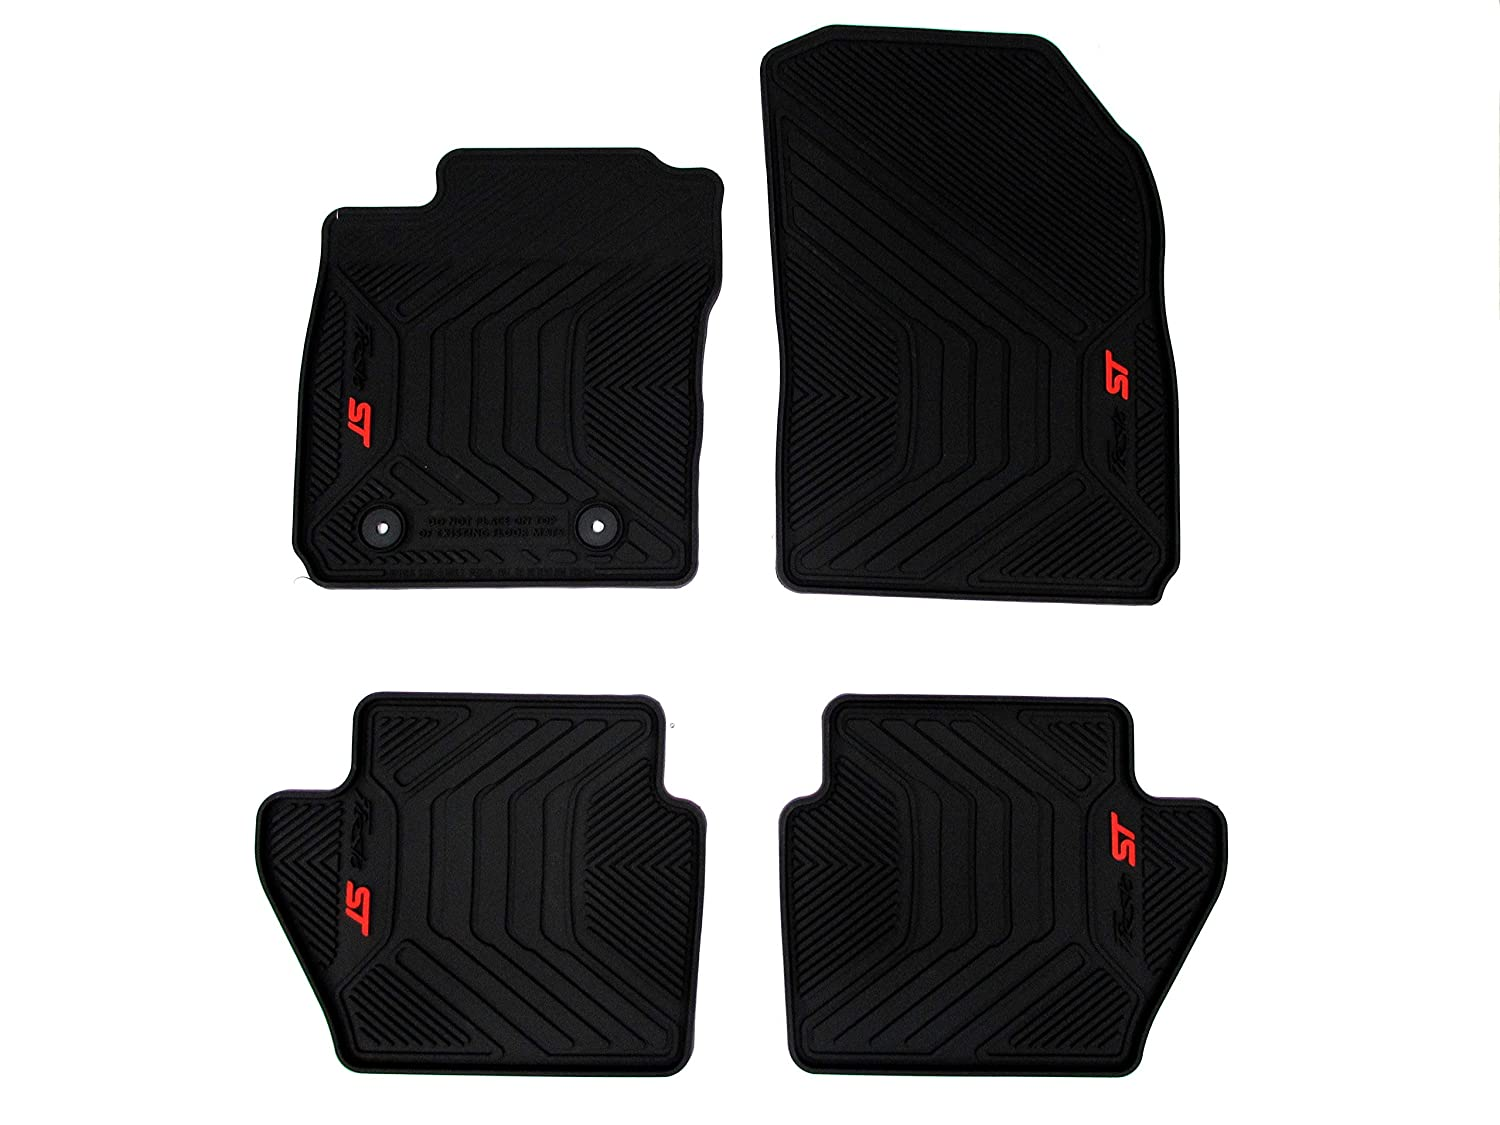 Weathertech mats australia - Exactly The Same As The Carpet Mats But A Durable Rubber Fit Would Be Perfect And The Cost Is 99